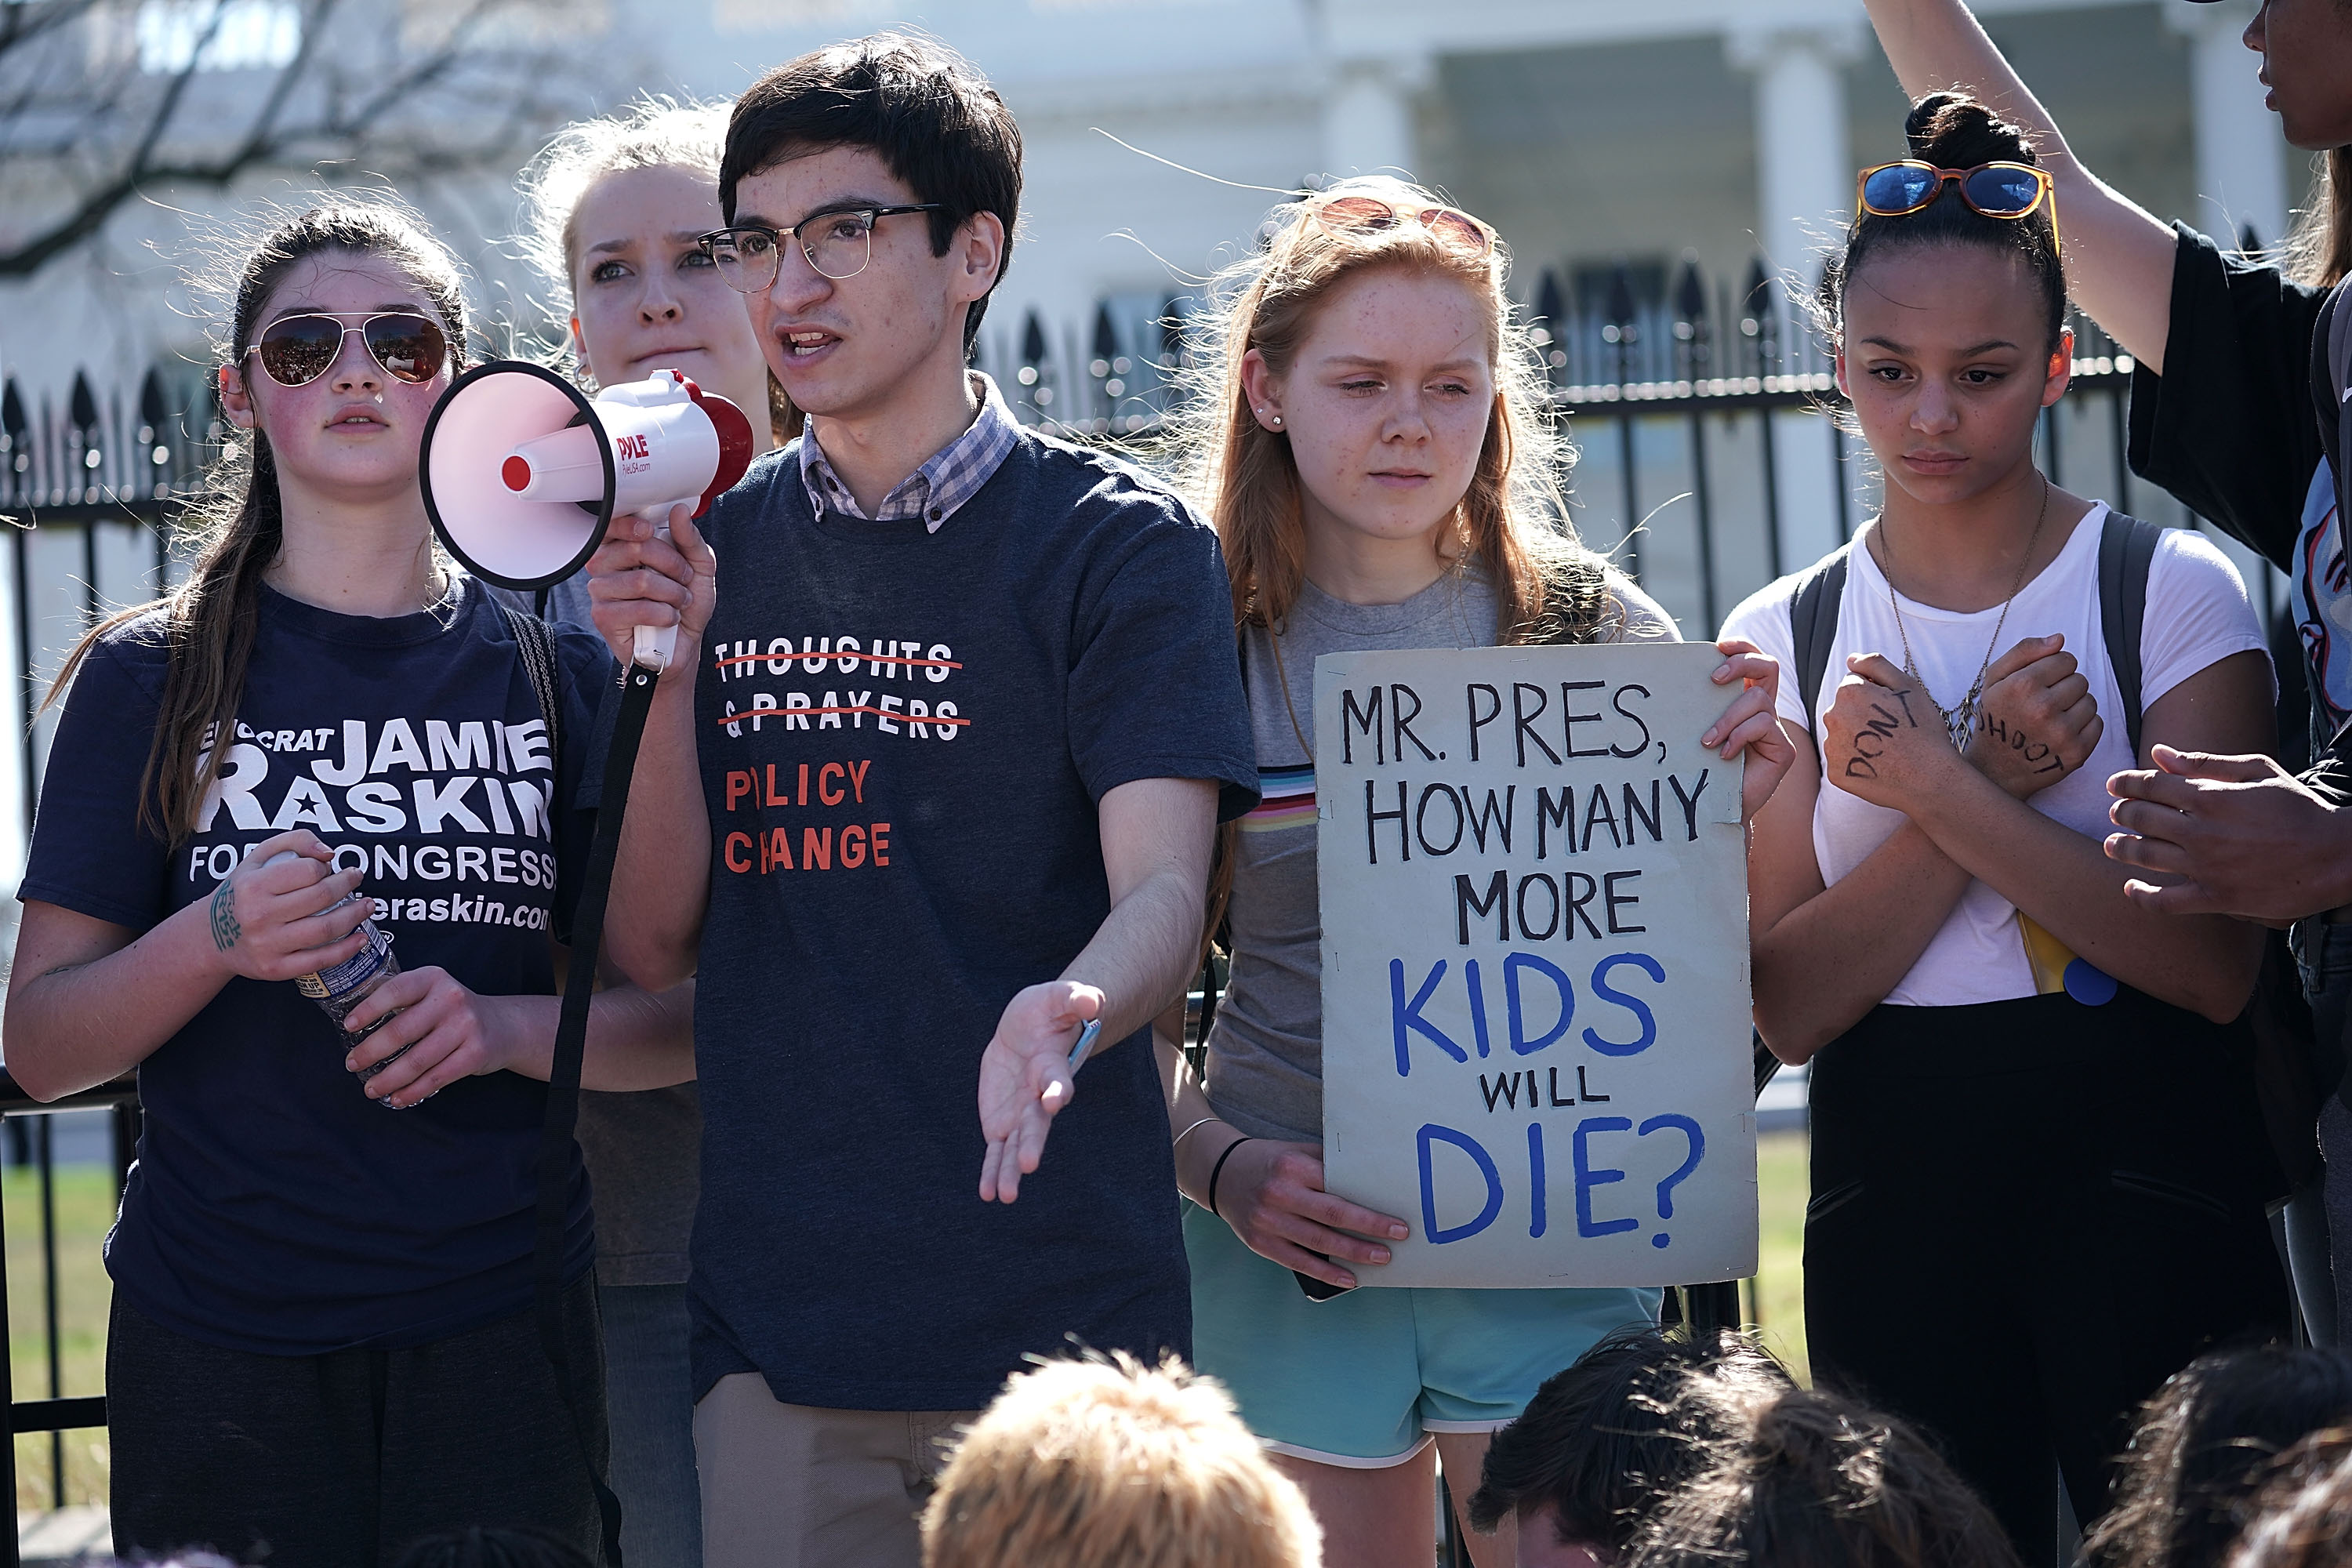 Students From A Maryland High School Organize Walkout And March On Capitol Demanding Gun Control Action From Congress